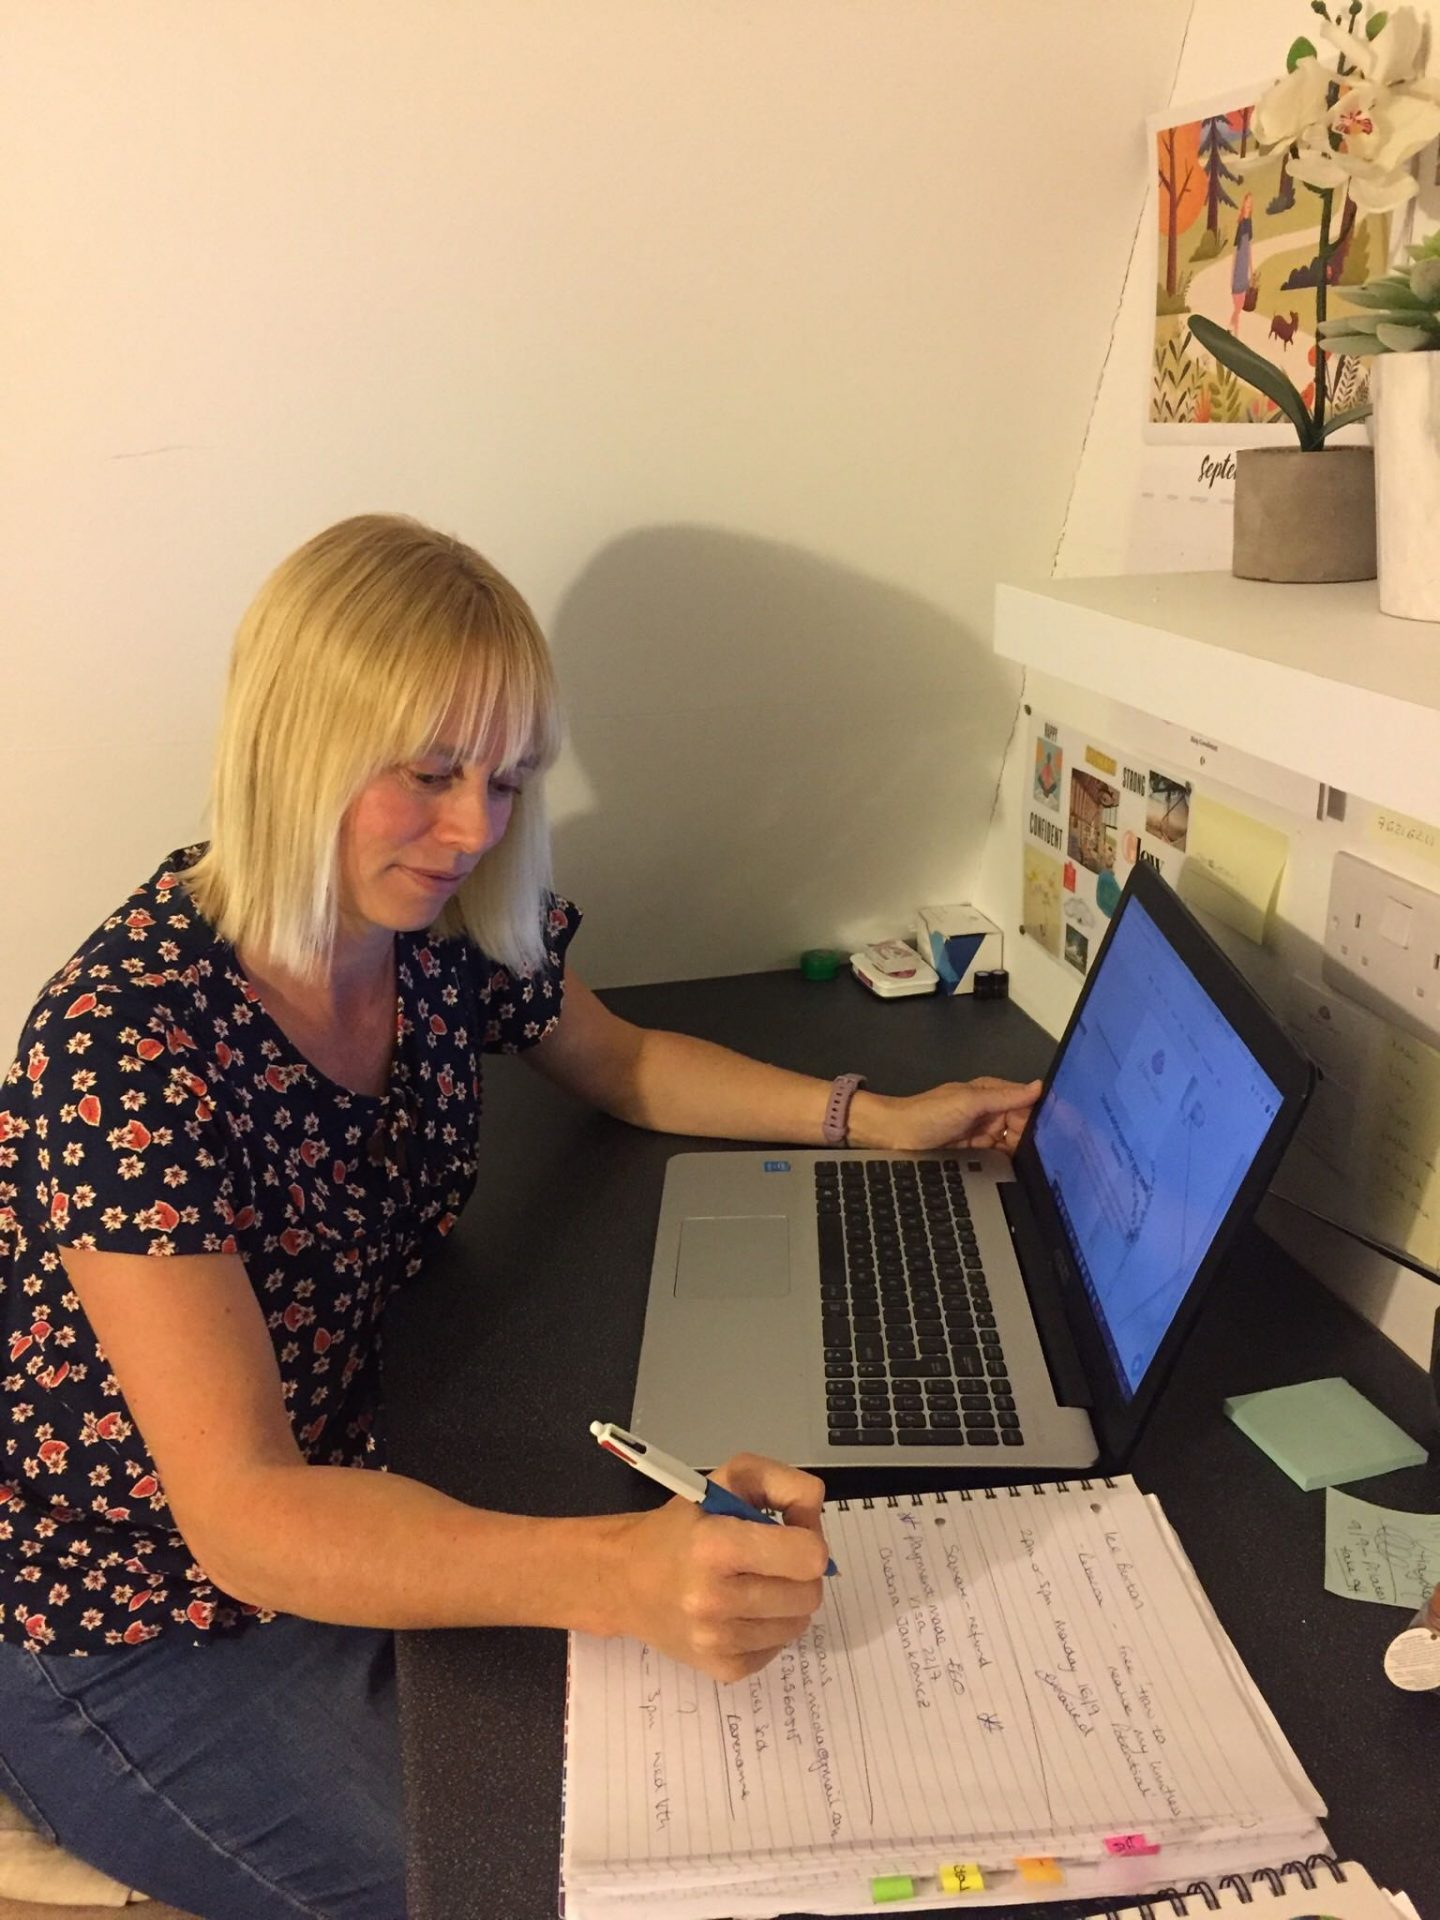 Working from home, Emm aRowley profile on The Homeworker